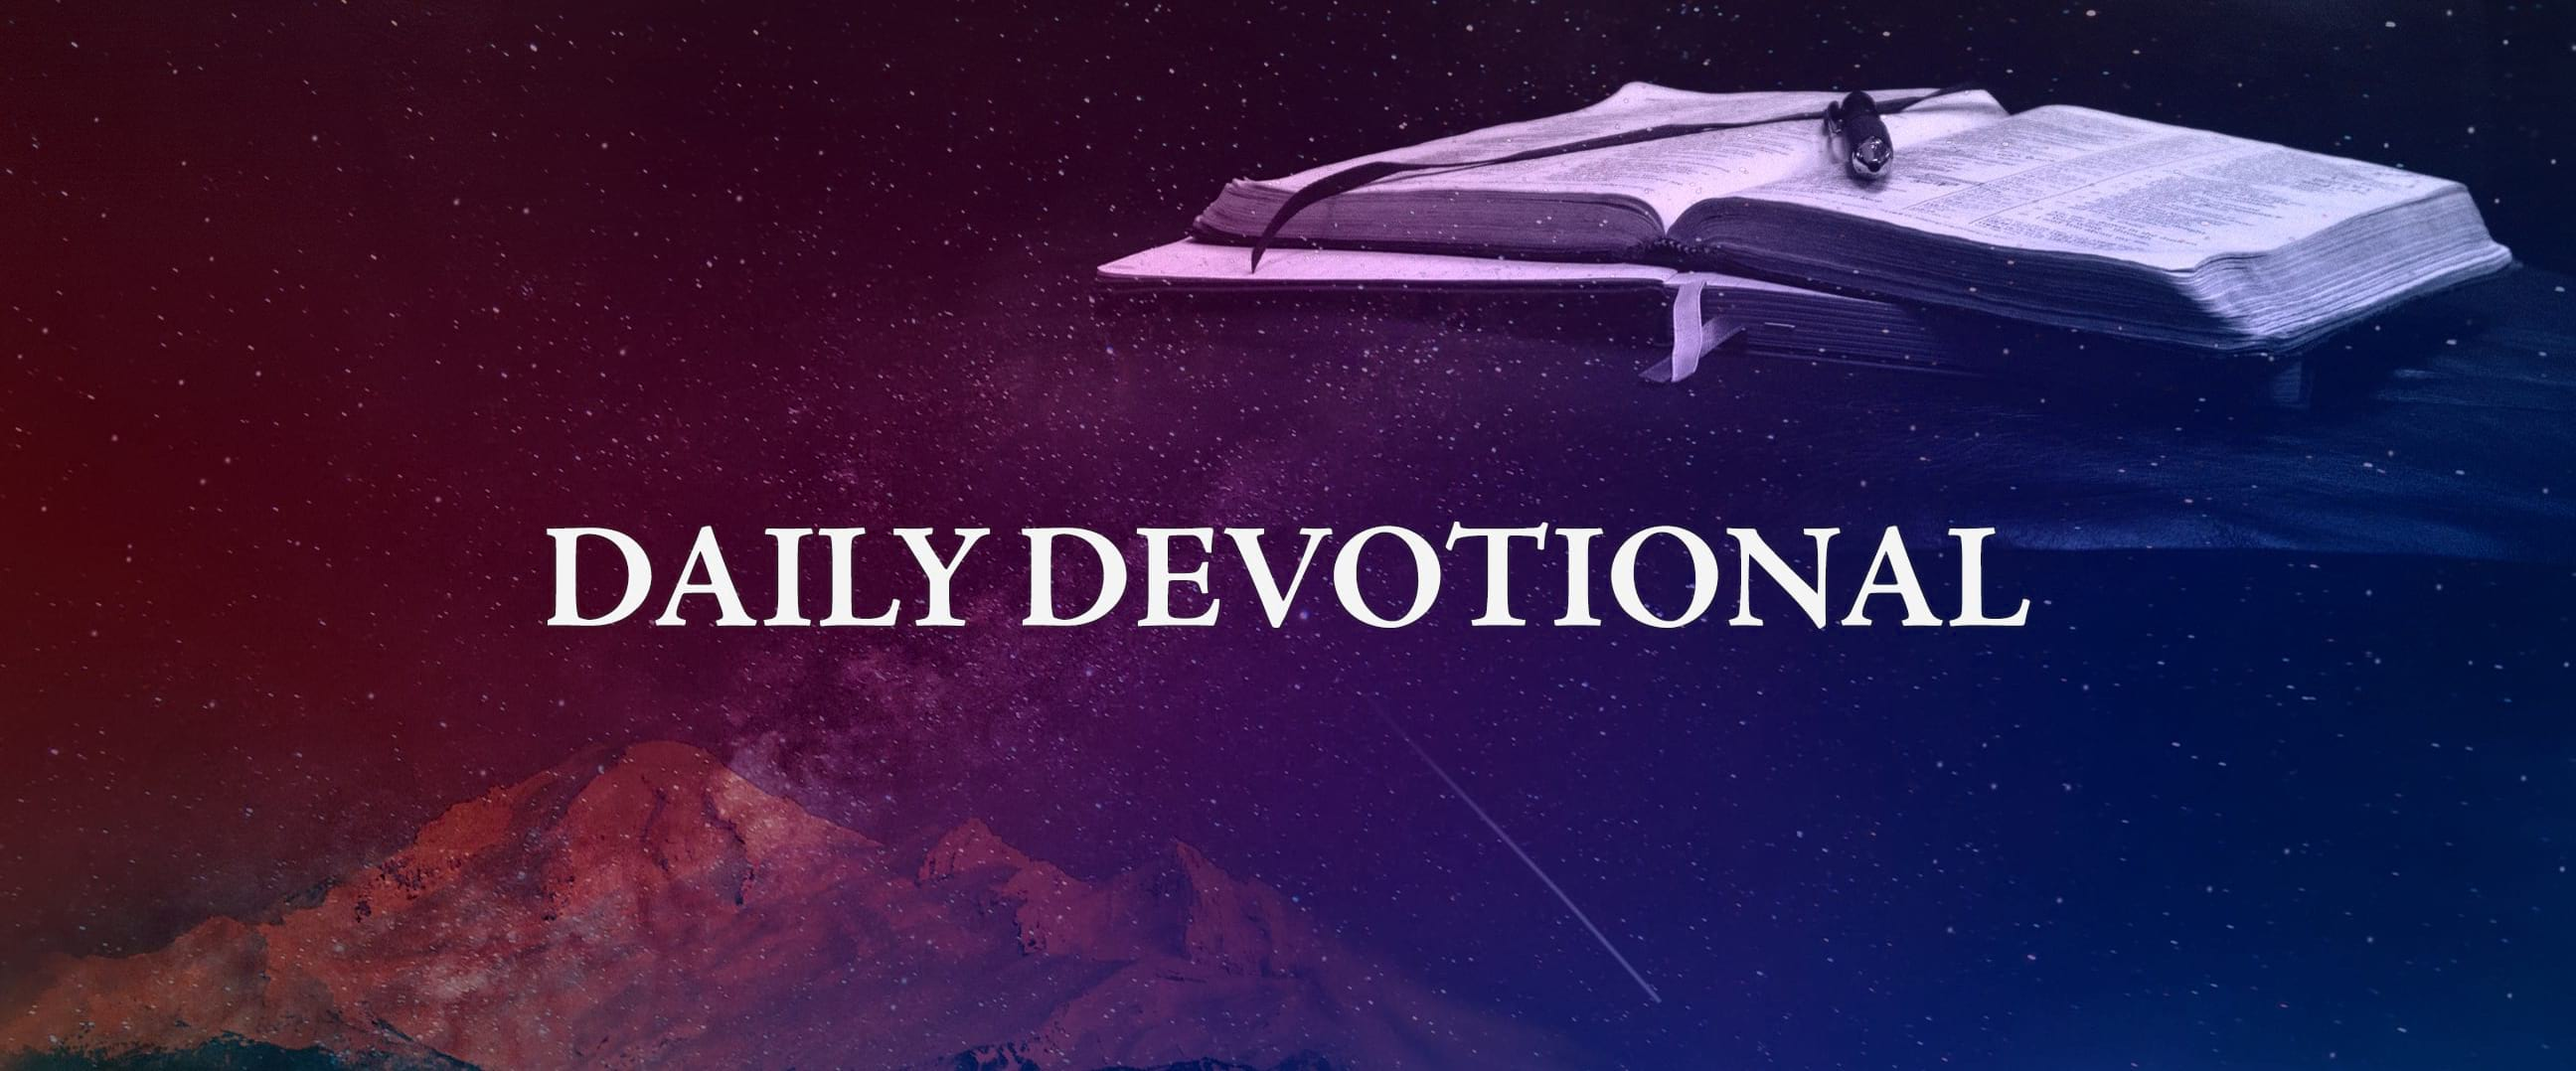 Daily Devotional | msm morningstarministries org